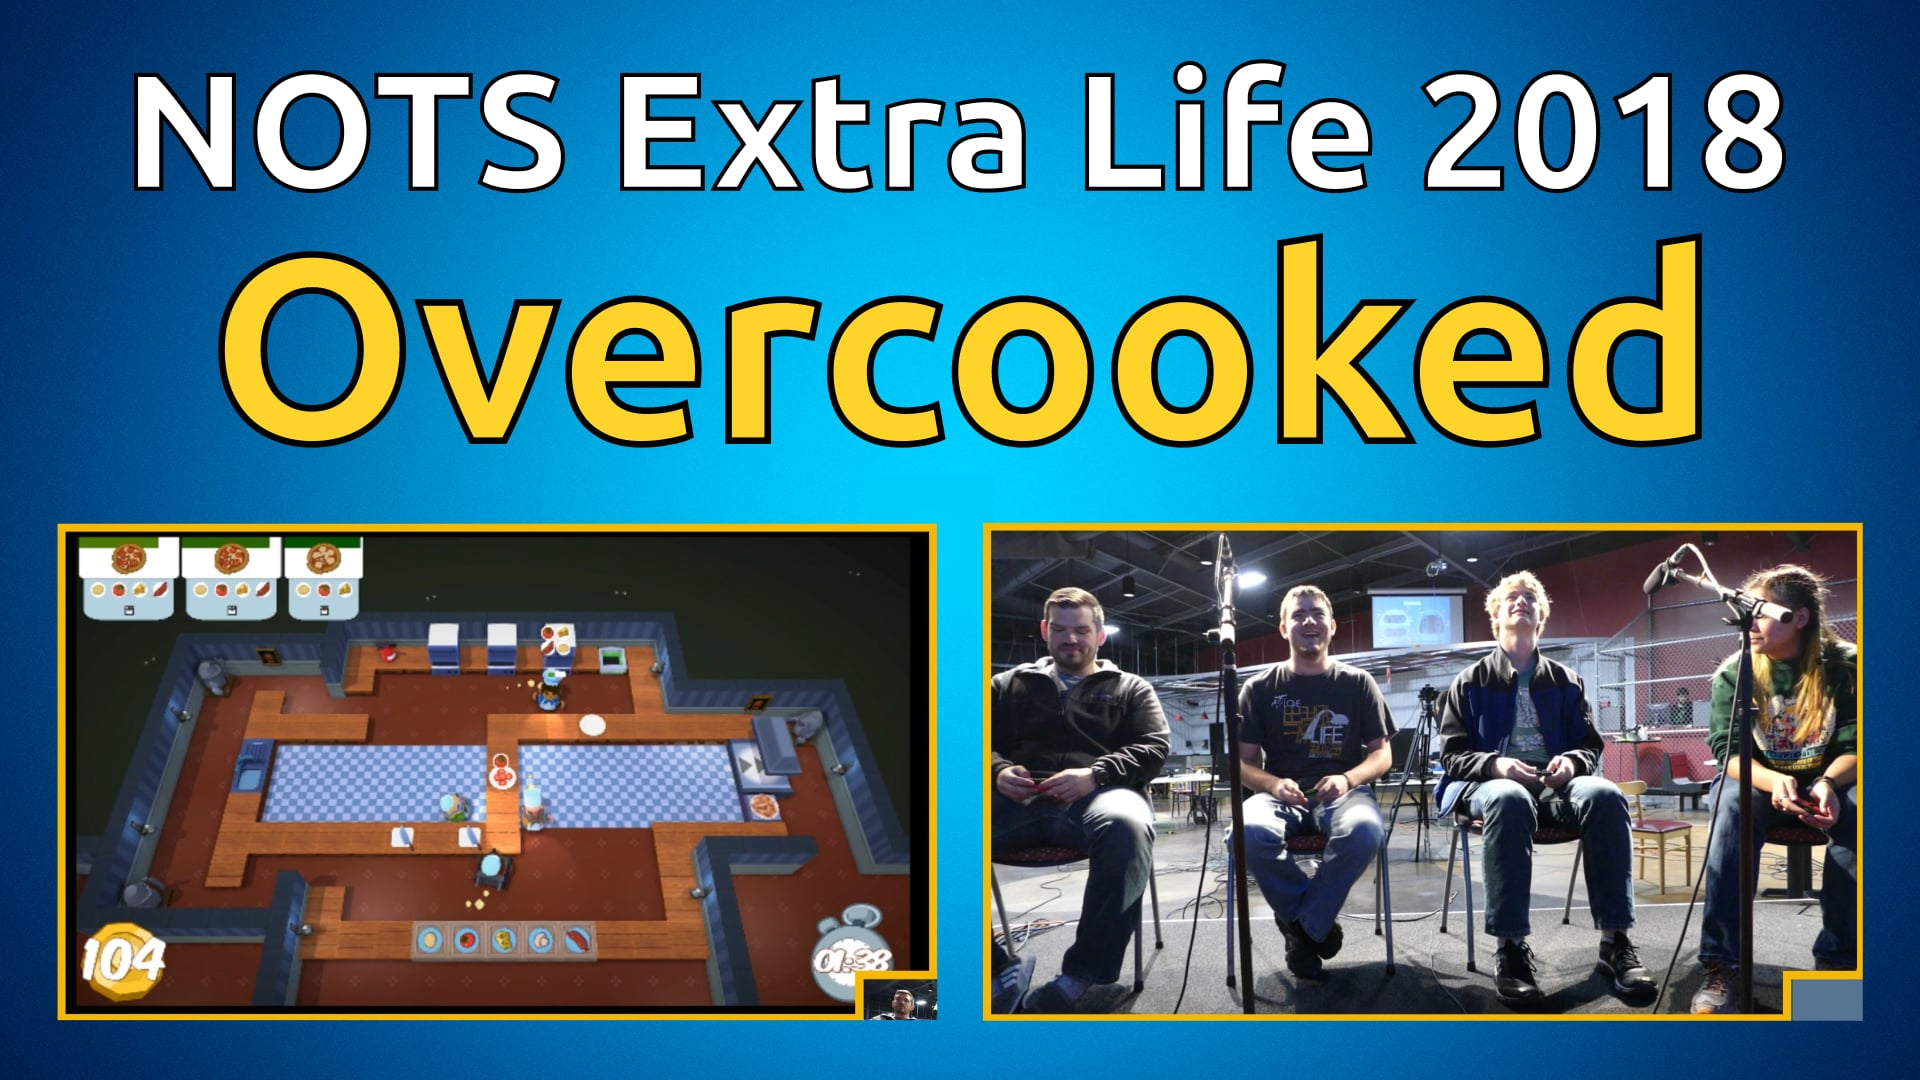 Overcooked - NOTS Extra Life 2018